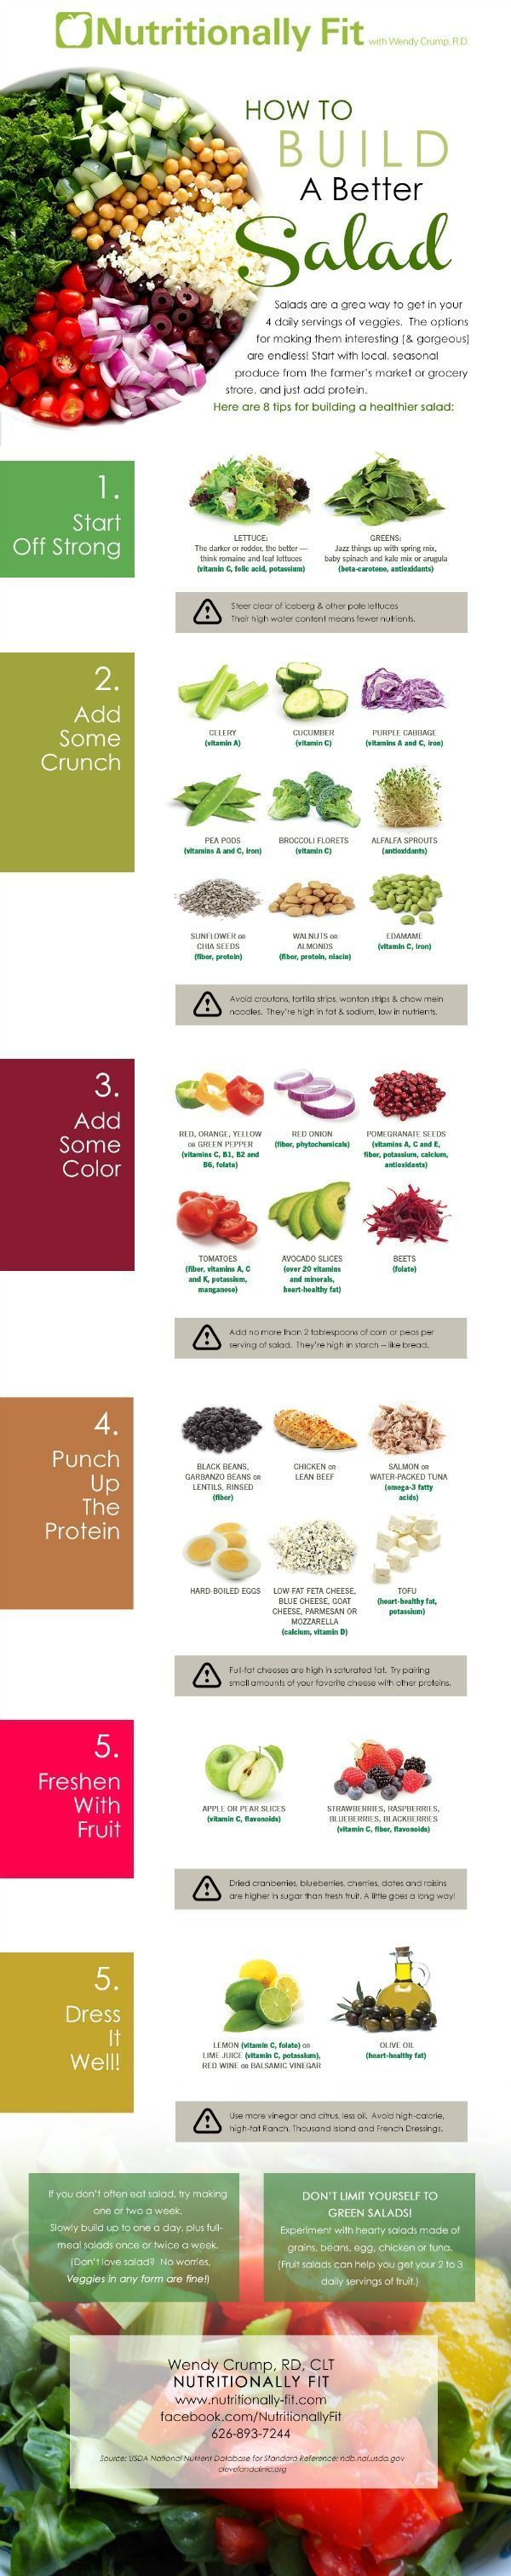 How to build a better salad infographic